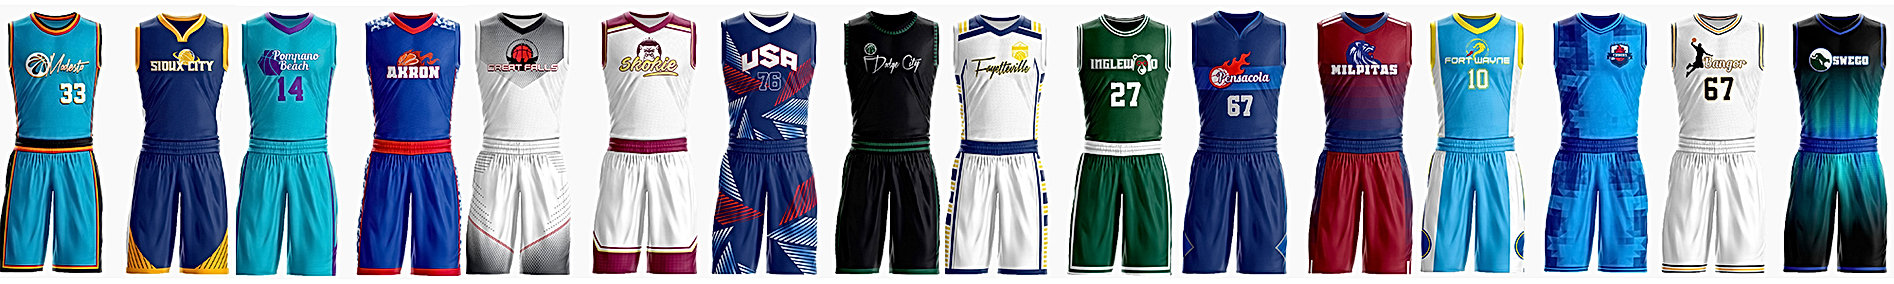 Exampels of Custom Basketball Jersey and Uniforms